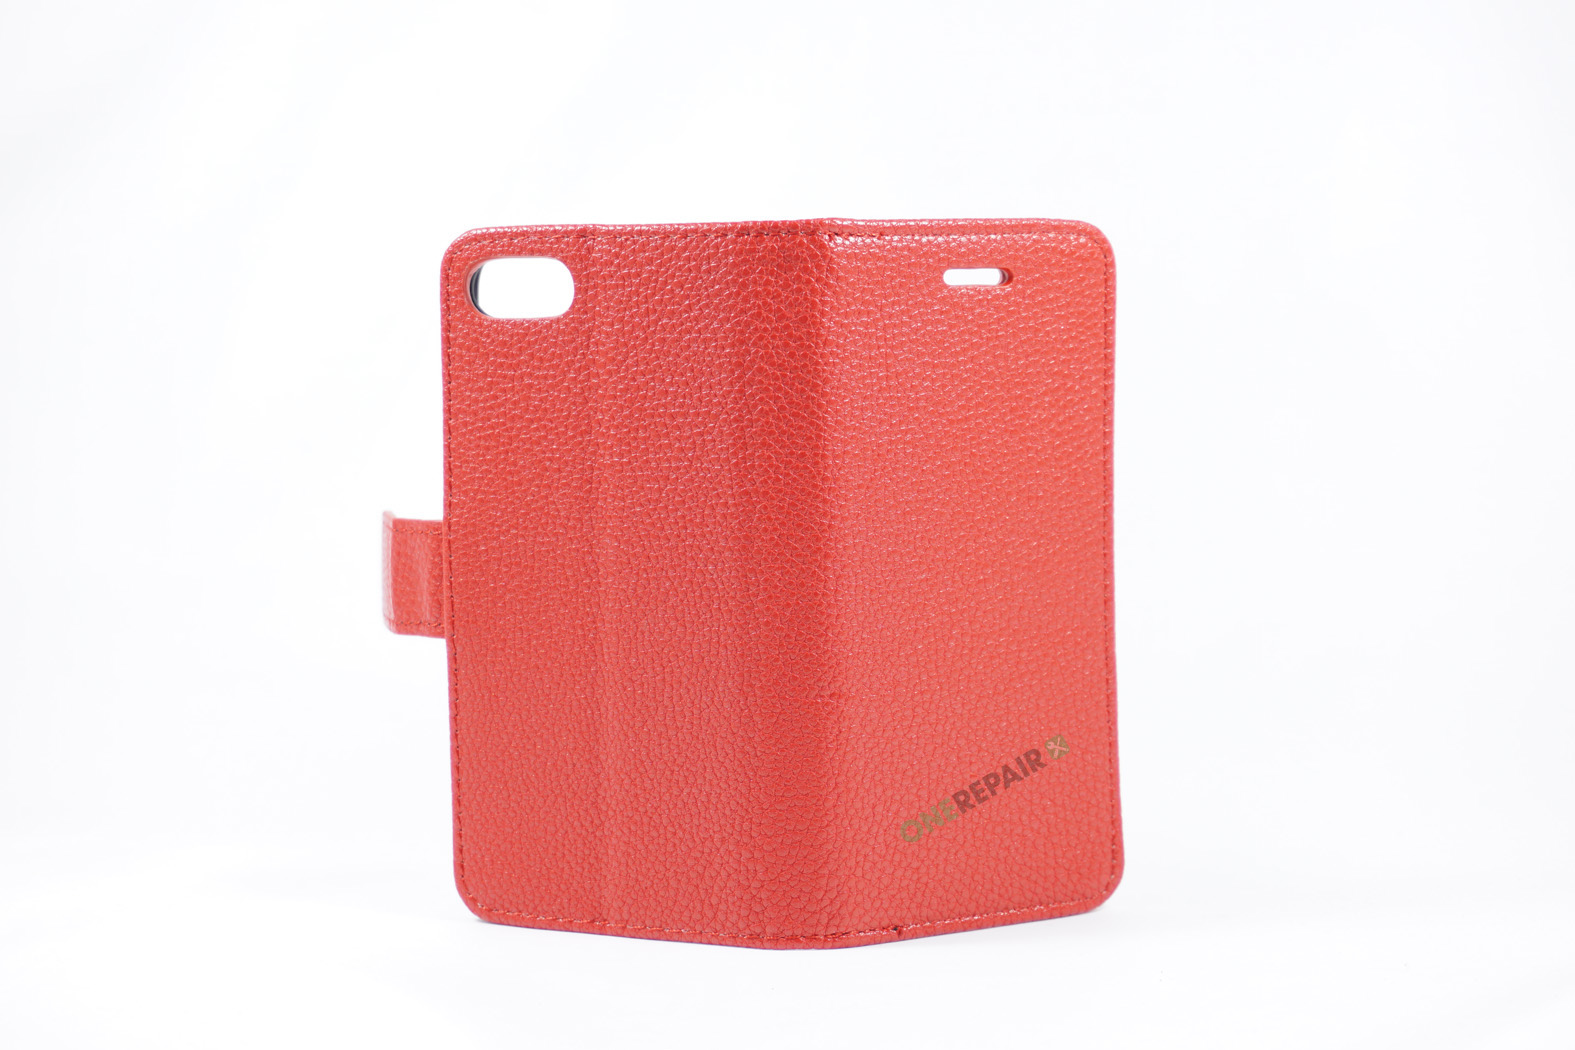 350822_iPhone_7_8_Flipcover_Bubble_Cover_Roed_OneRepair_WM_00002